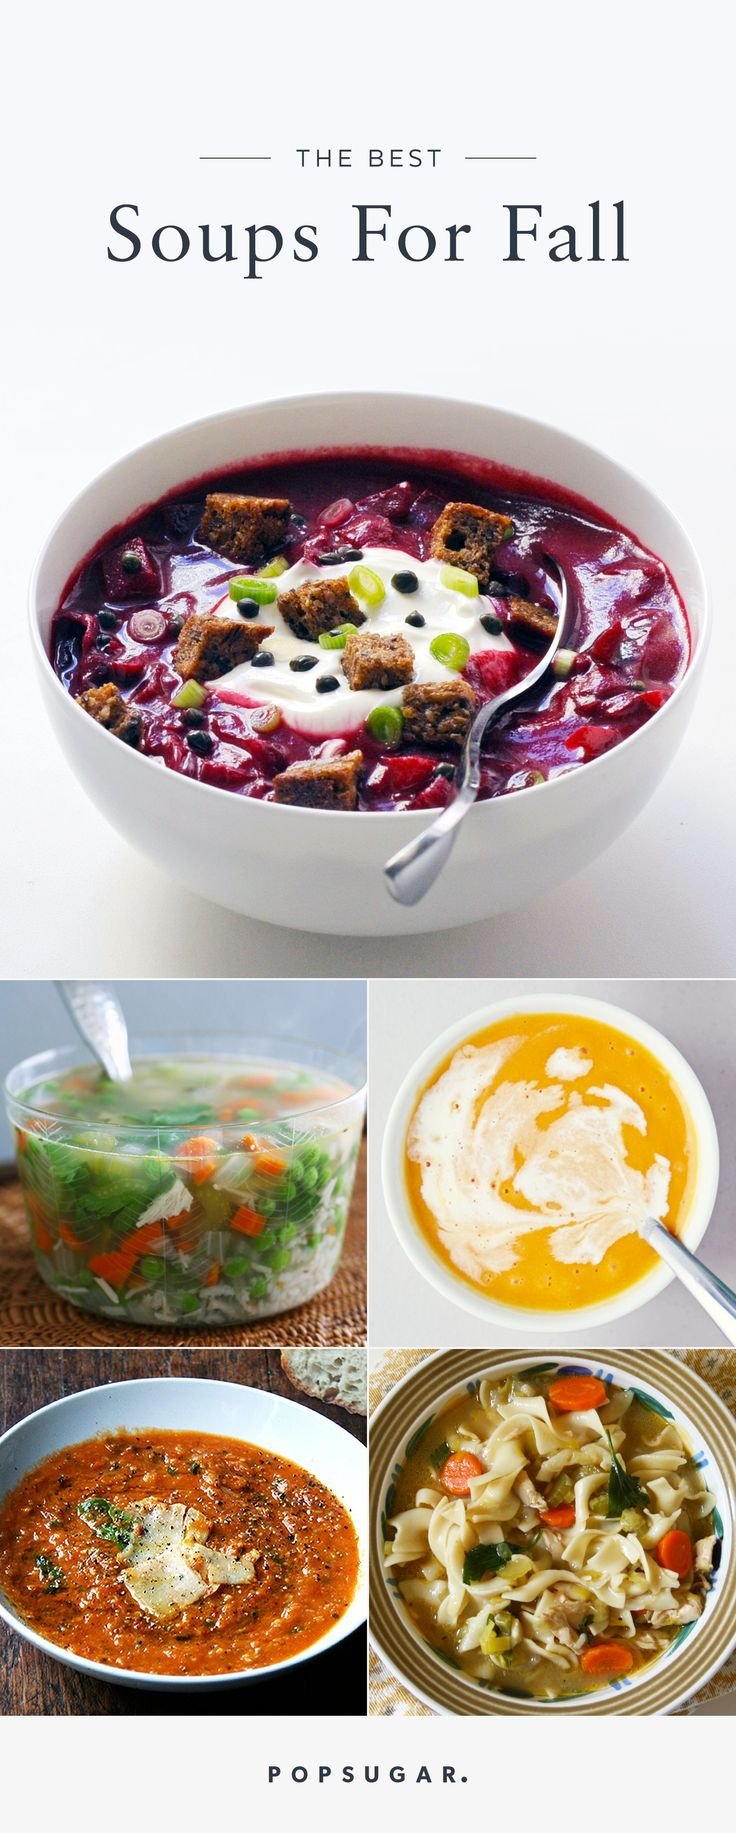 686 best perfectly seasonal fall images on pinterest popsugar 14 fall soups because salads are so last season recipe roulettepopsugar foodpumpkin forumfinder Choice Image